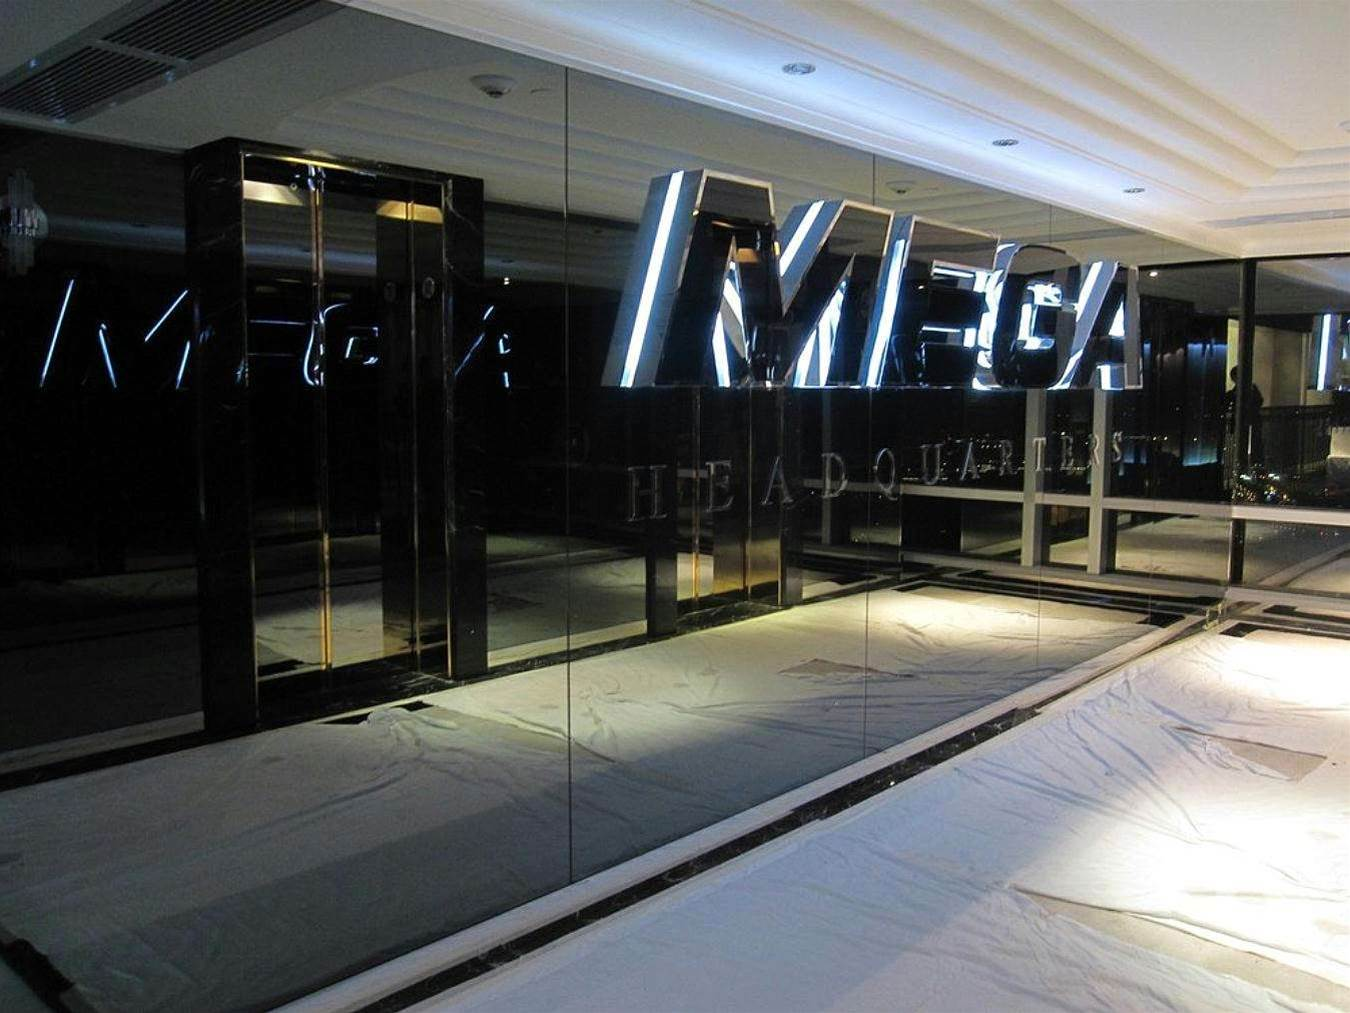 Megaupload takedown sparks wave of hacktivist attacks